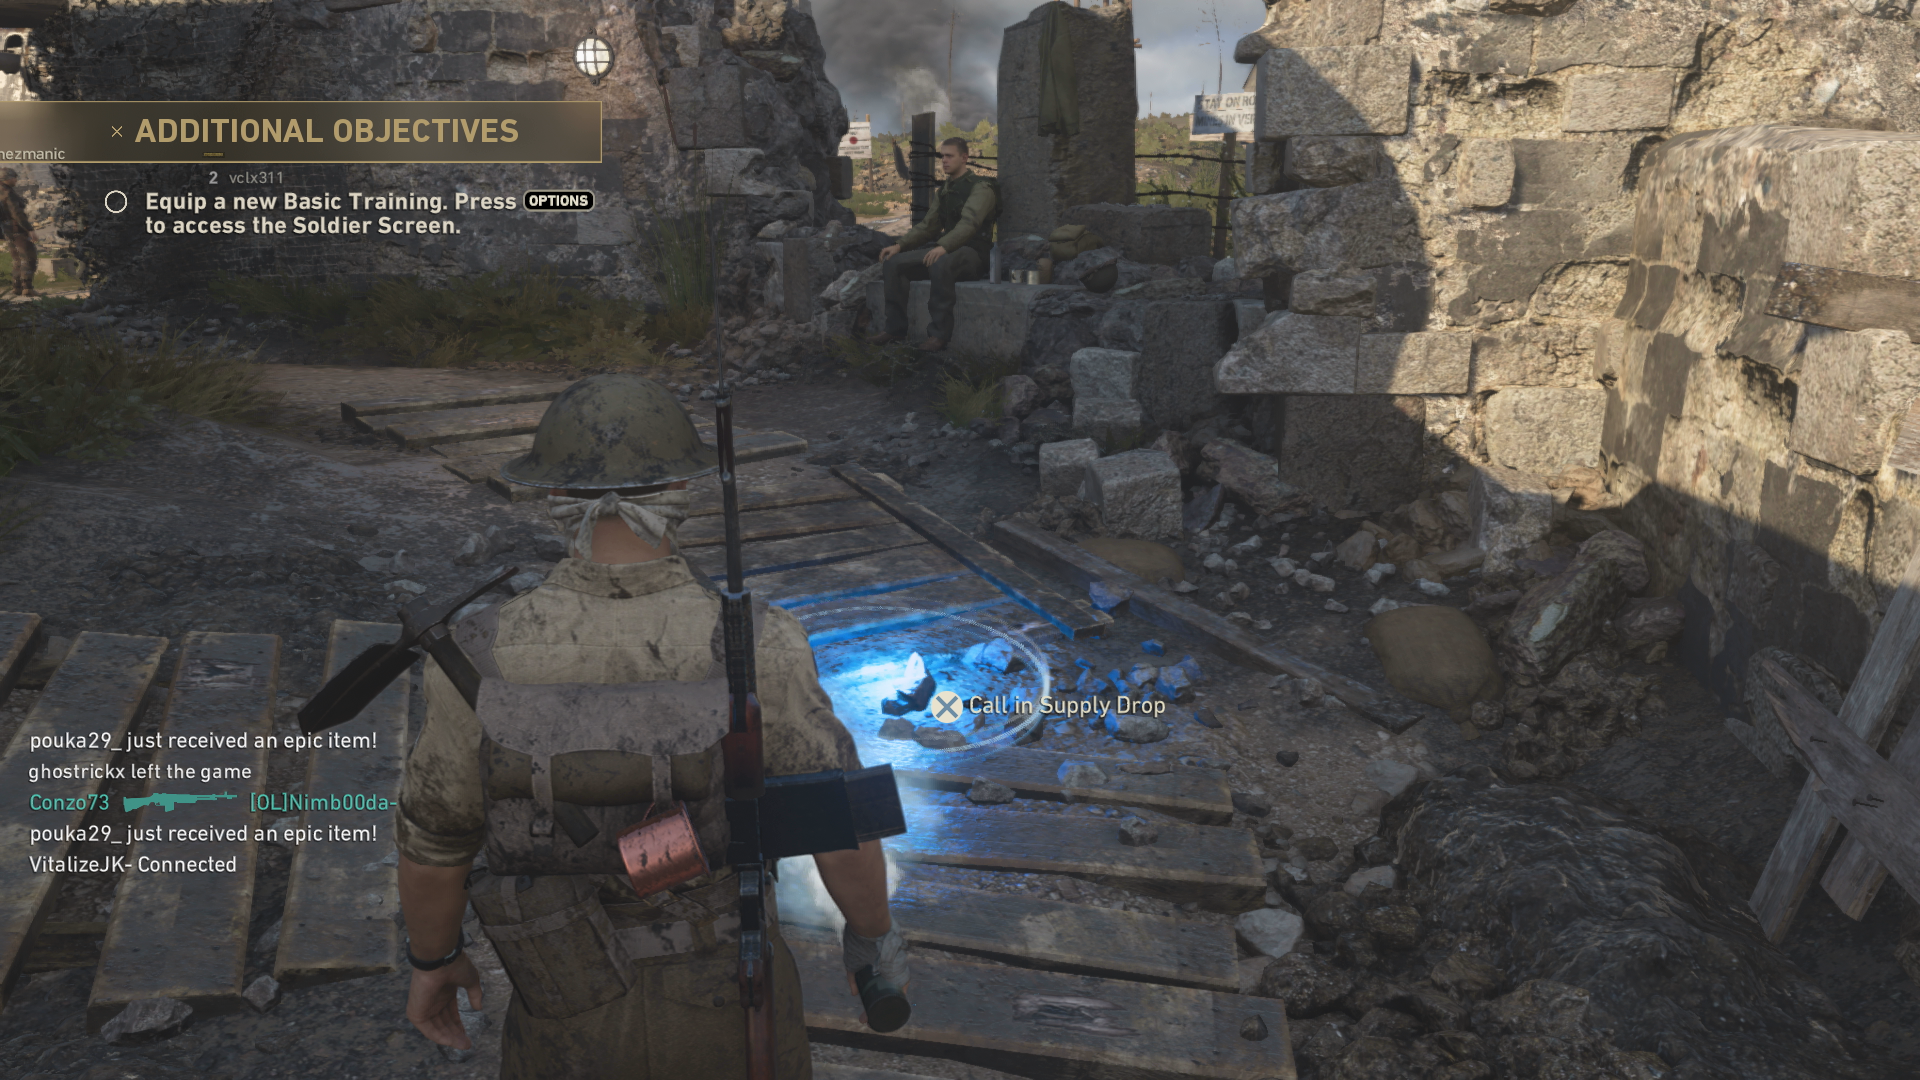 New Call Of Duty WW2 Patch Has Unexpected Problems With Current Game